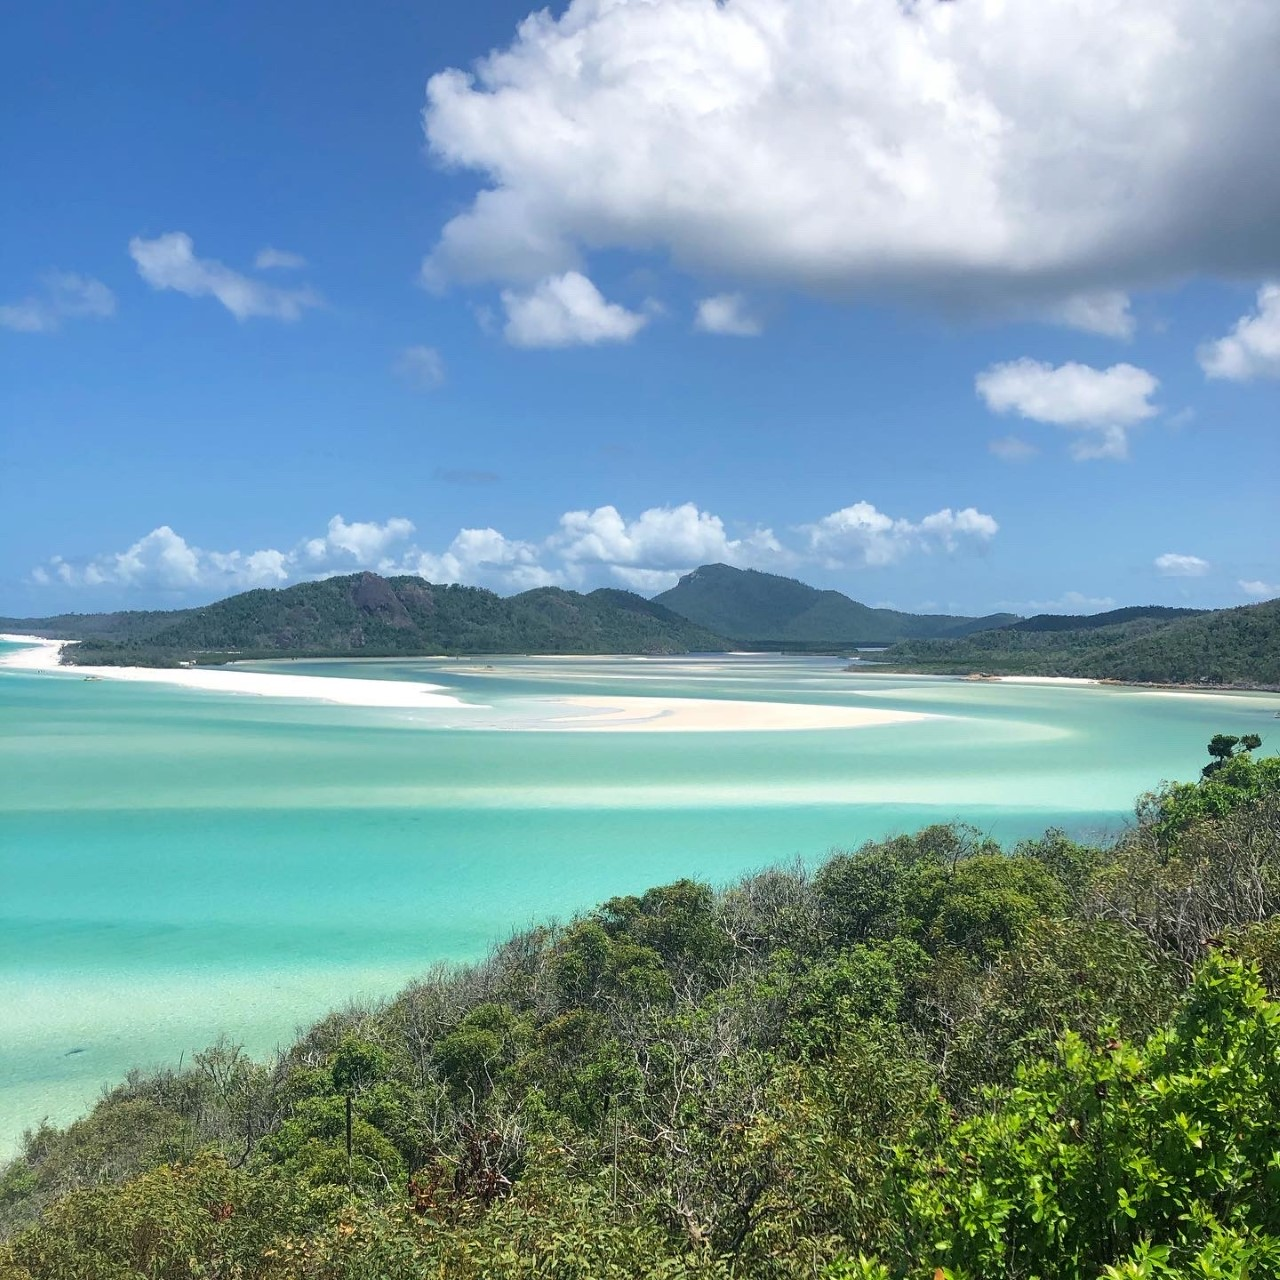 Backpacking Australia: The Whitsundays, Great Barrier Reef